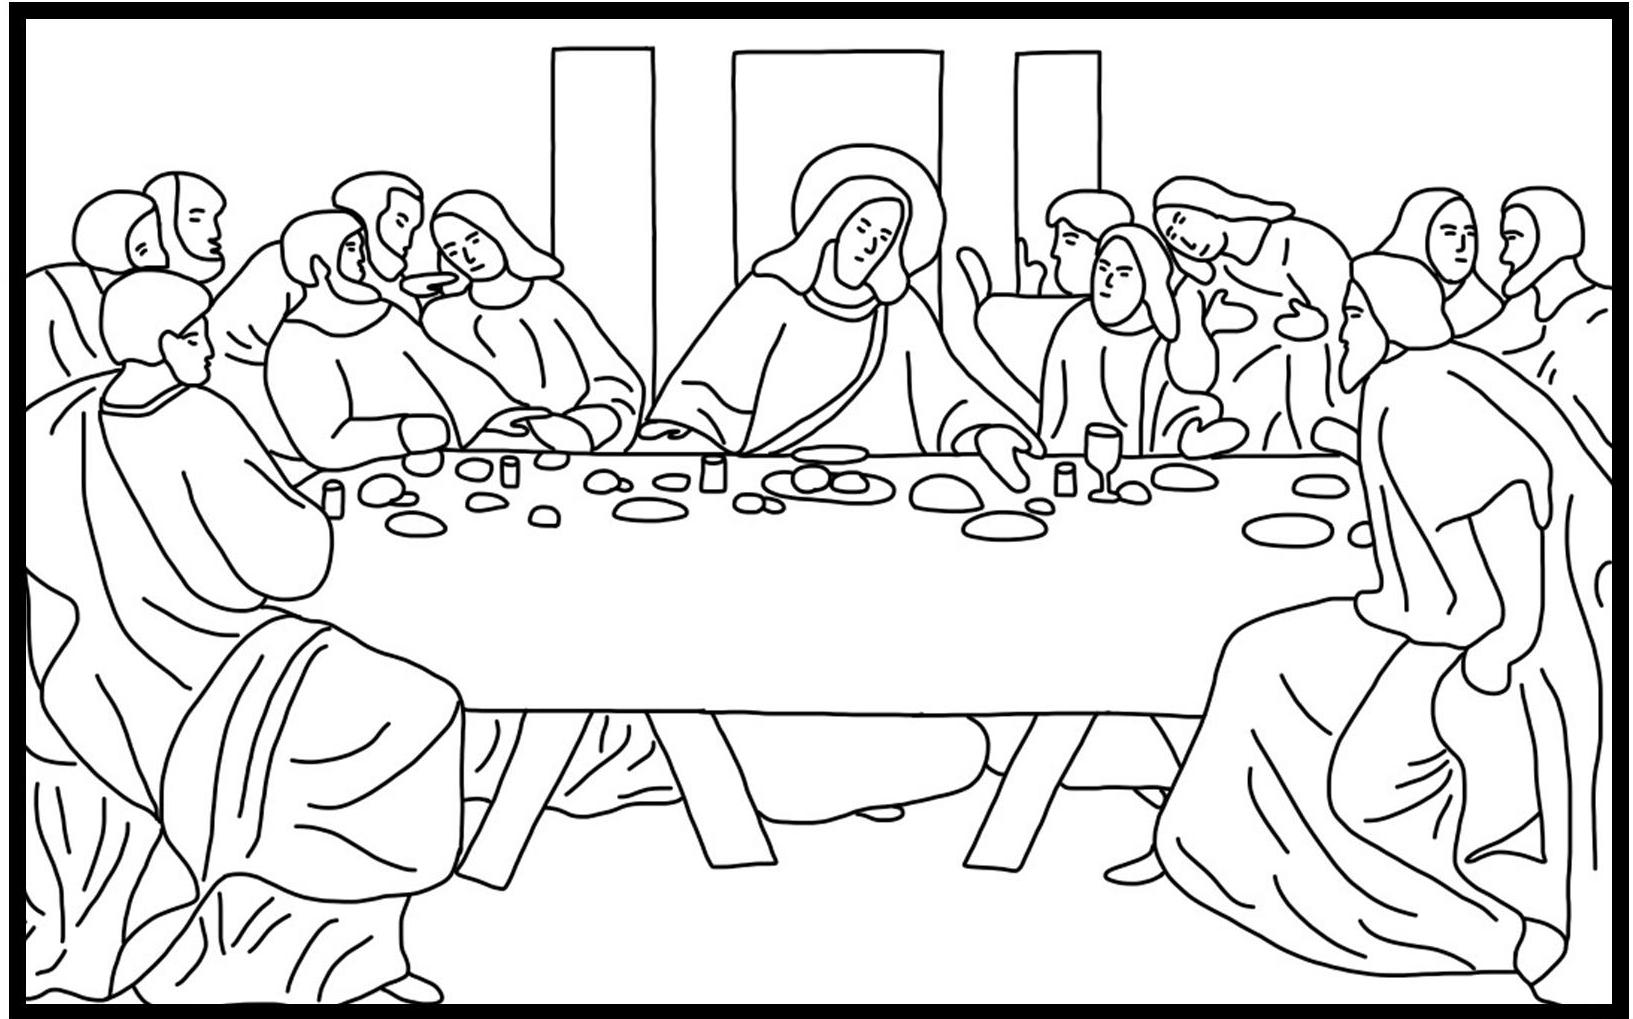 last supper coloring page the last supper coloring page coloring home page coloring supper last